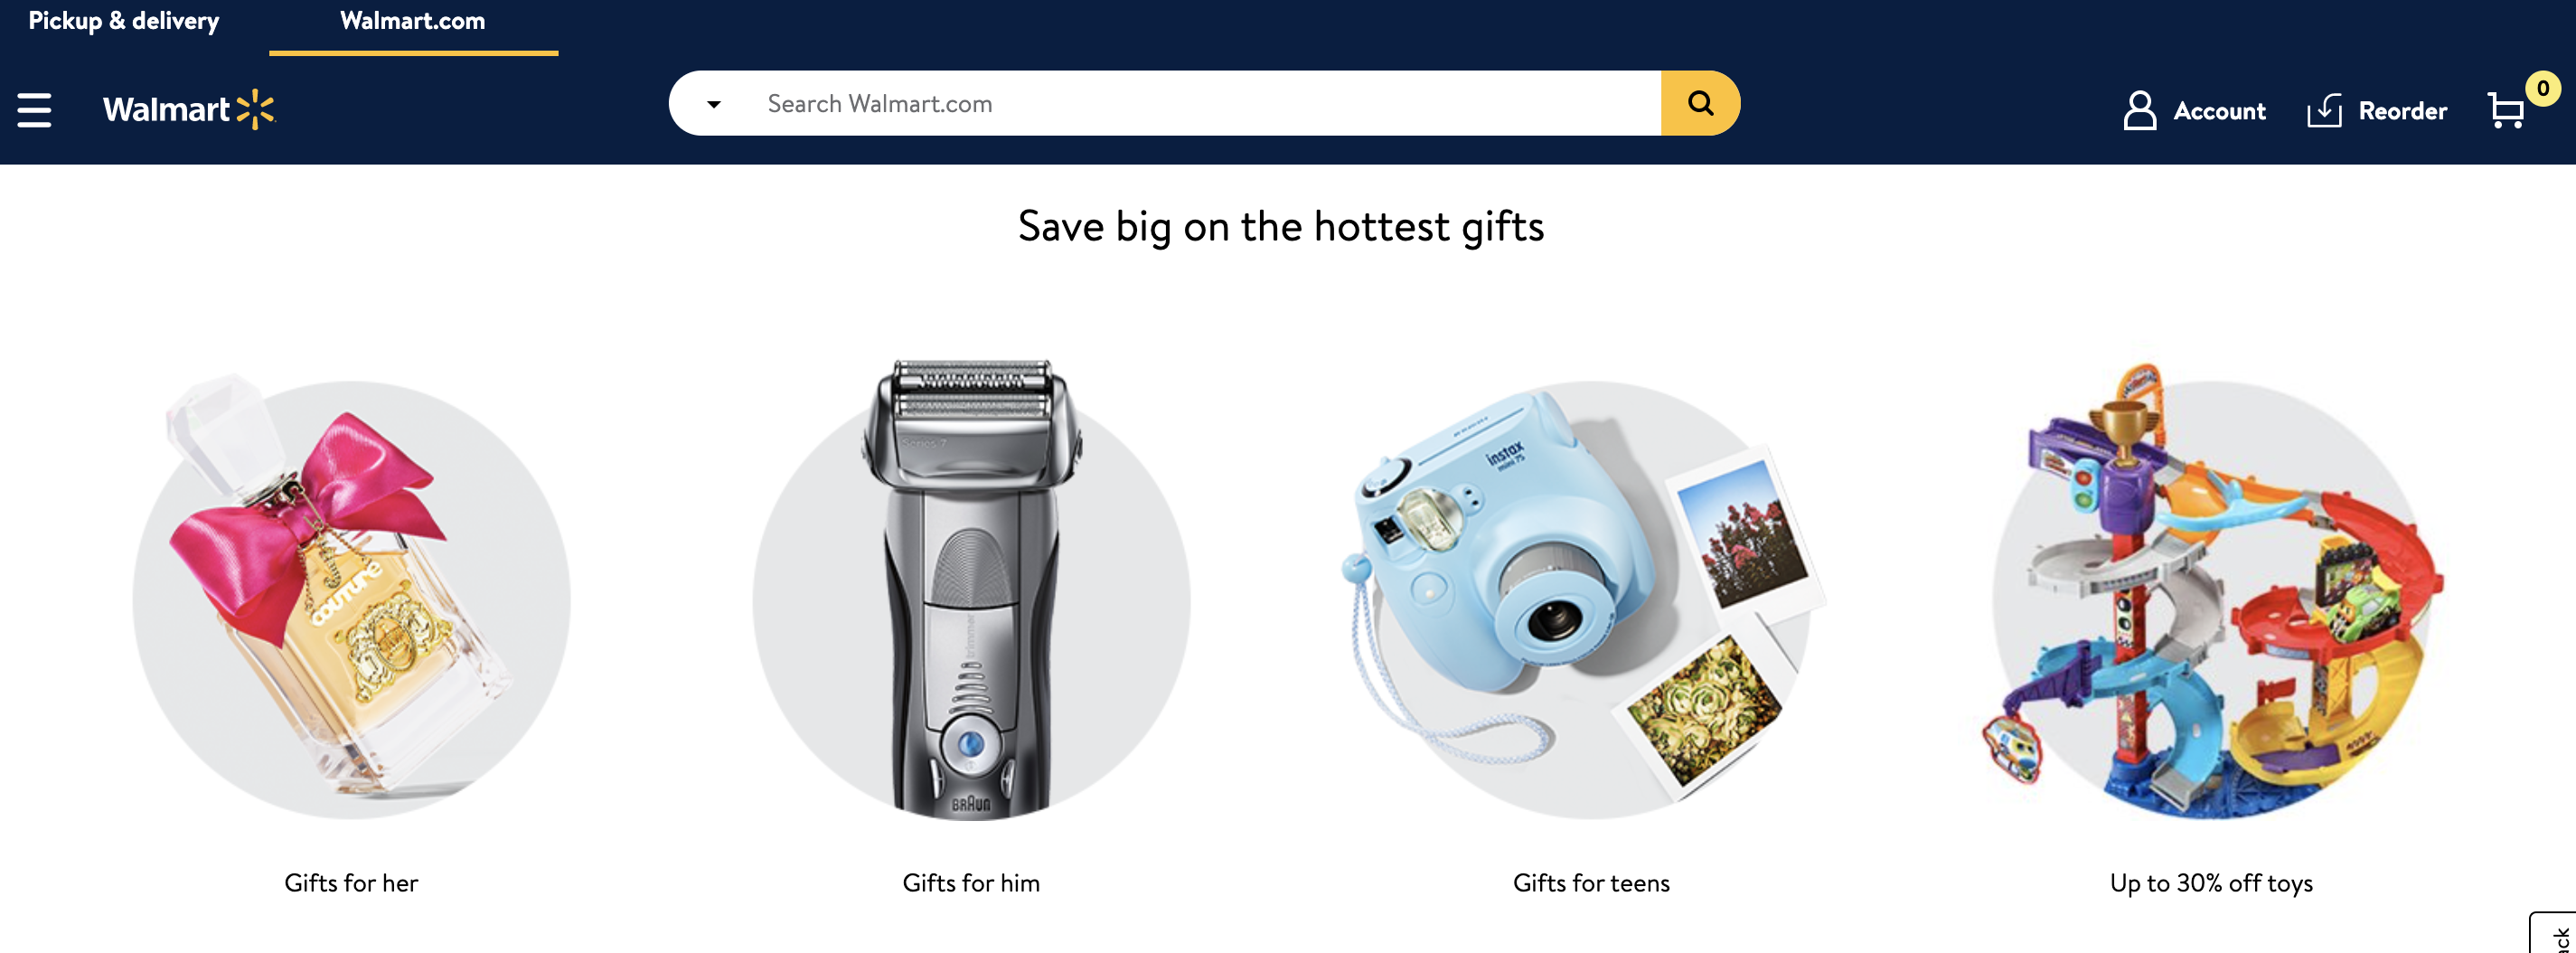 Walmart Holiday Deals for 2020 and Ecommerce Strategy | Pattern